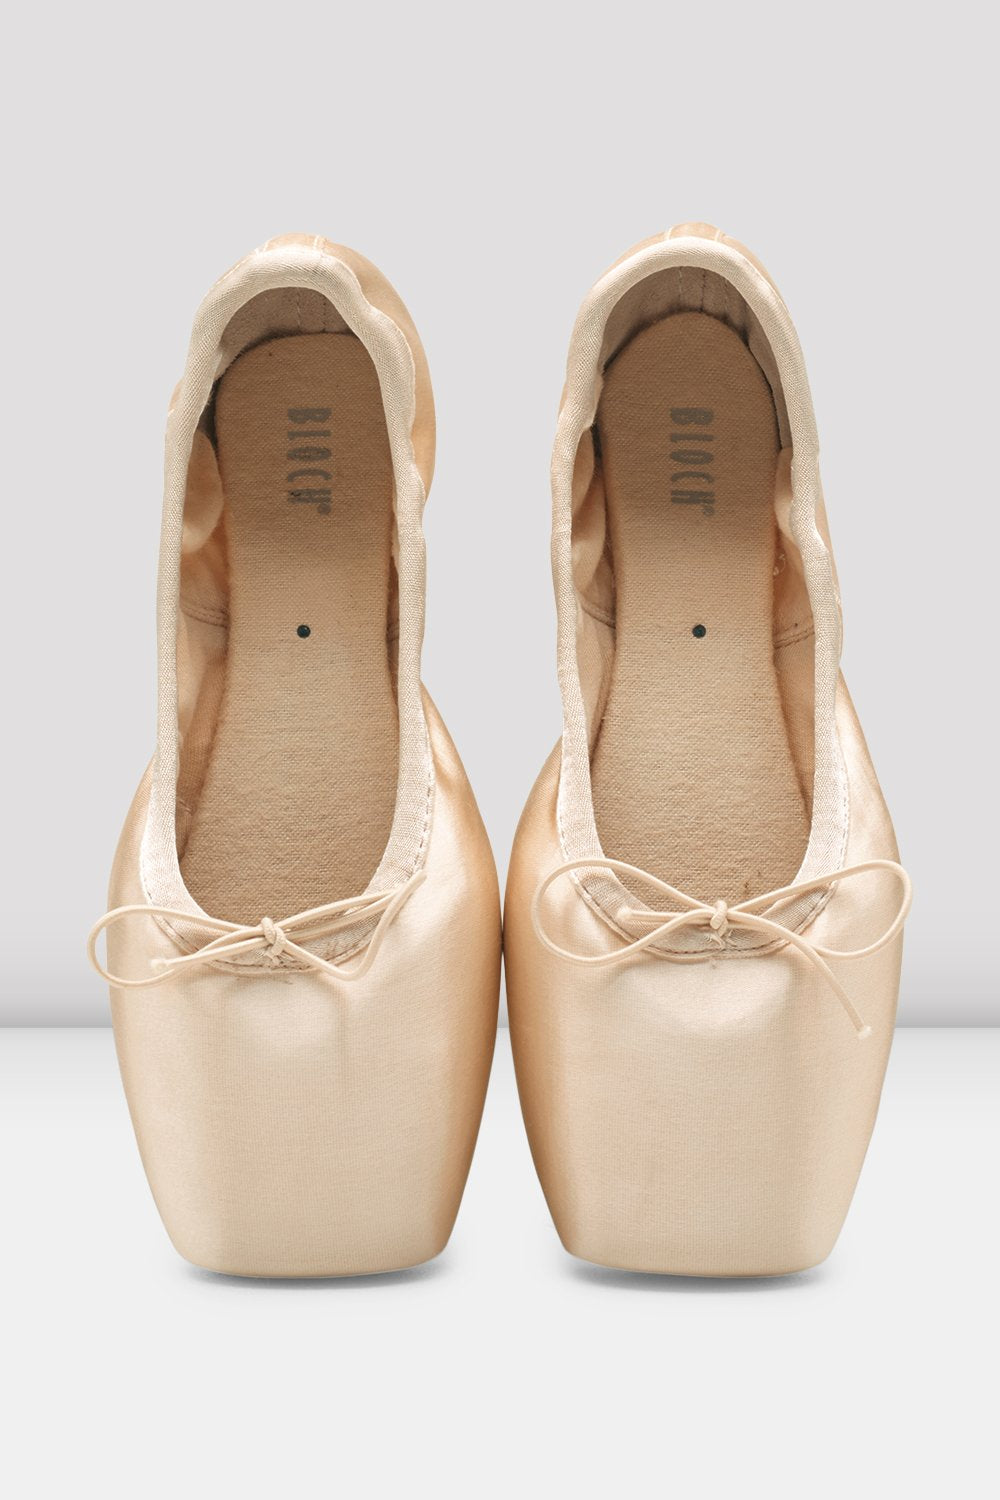 Synthesis Stretch Pointe Shoes